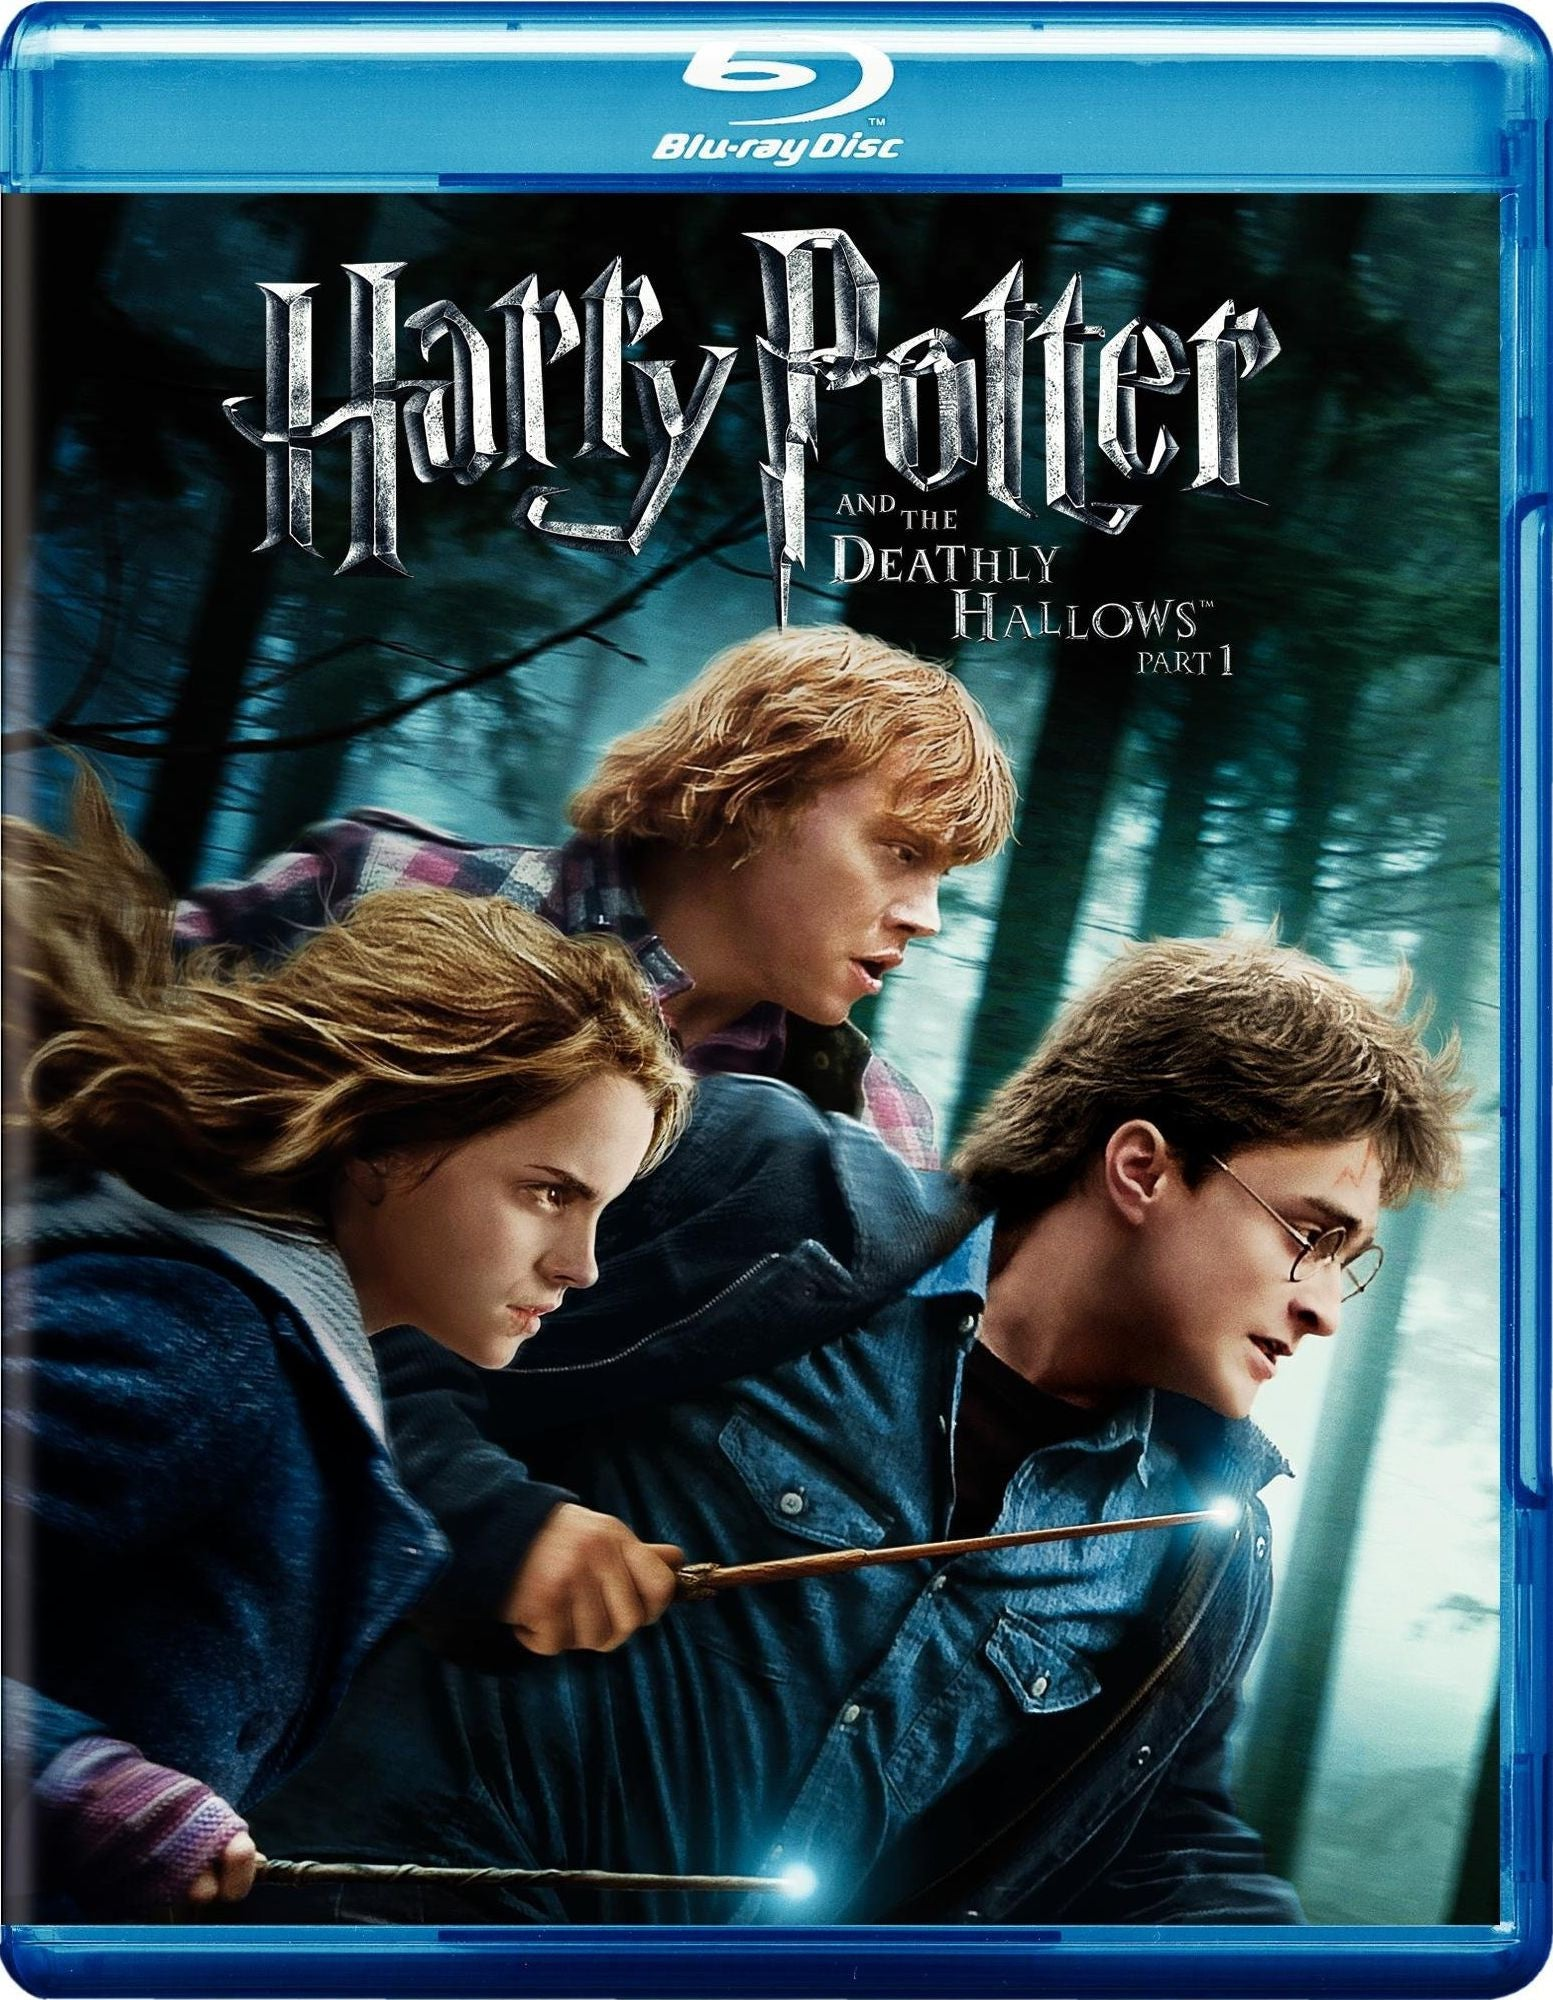 HARRY POTTER THE DEATHLY HALLOWS PT 1-BLU DVD COMBO PACK VG